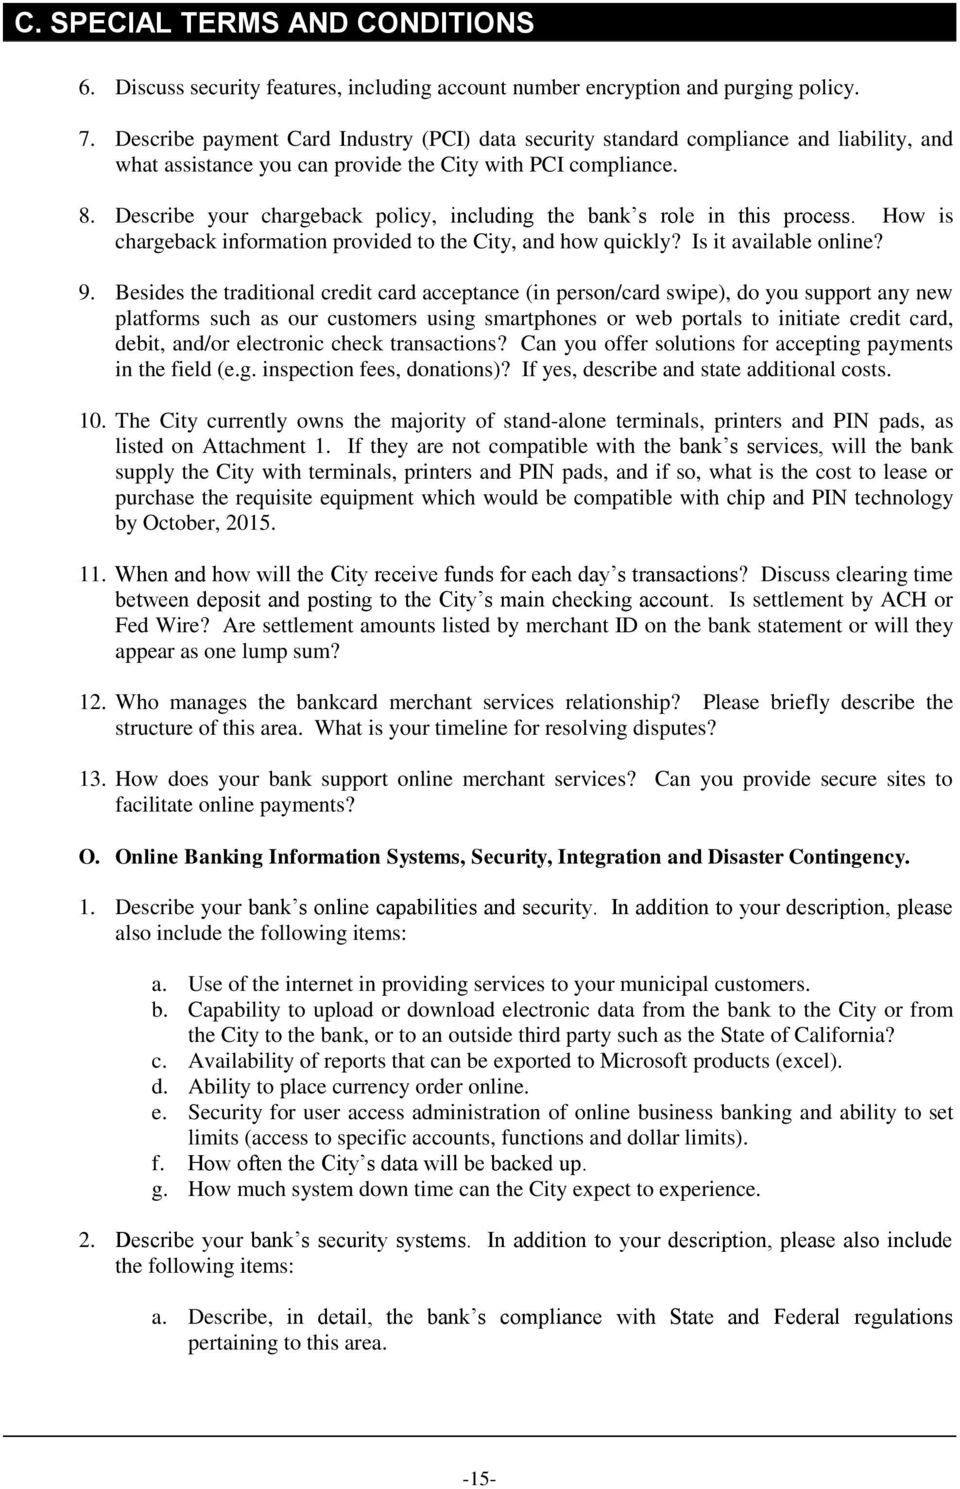 notice requesting proposals for bank and merchant services - pdf